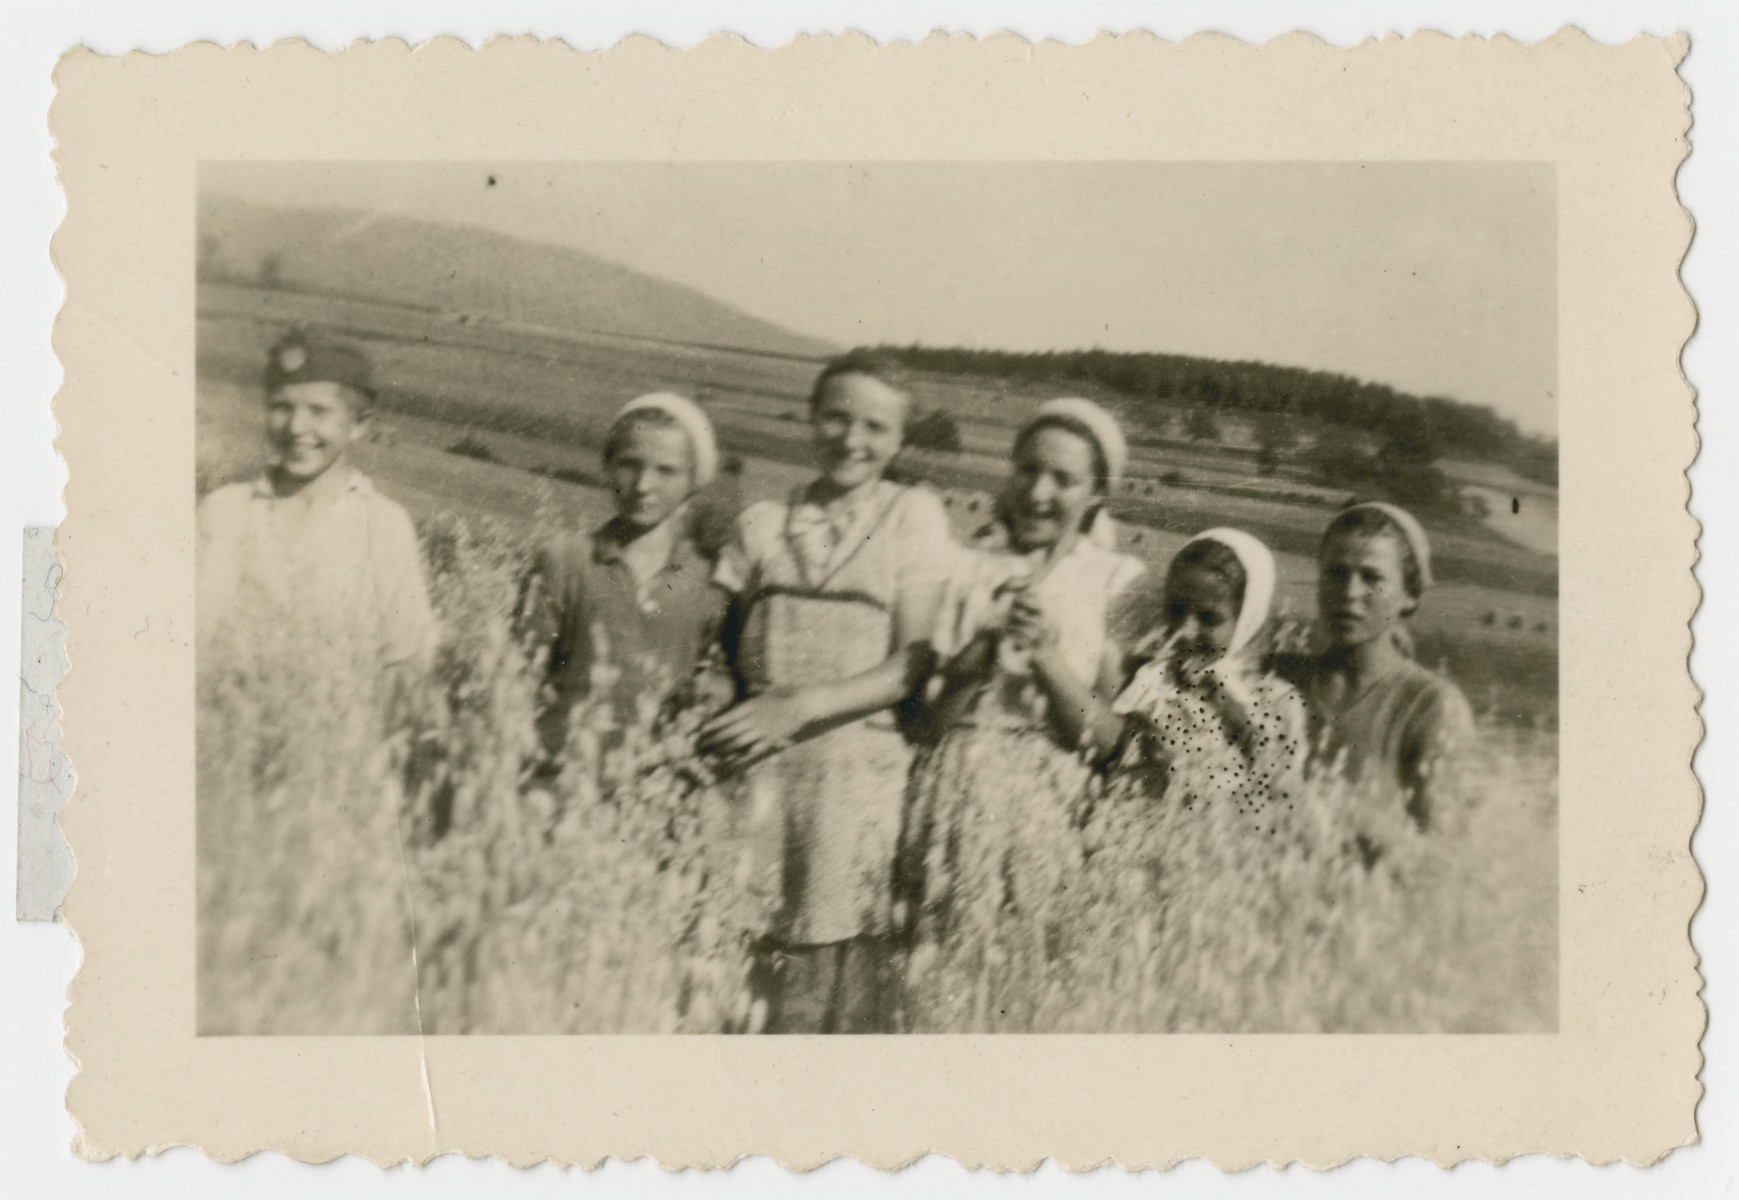 The Gruenberg sisters stand in a field with friends.  From left to right are a friend, Malka, Lenke, Bluma and two more friends.